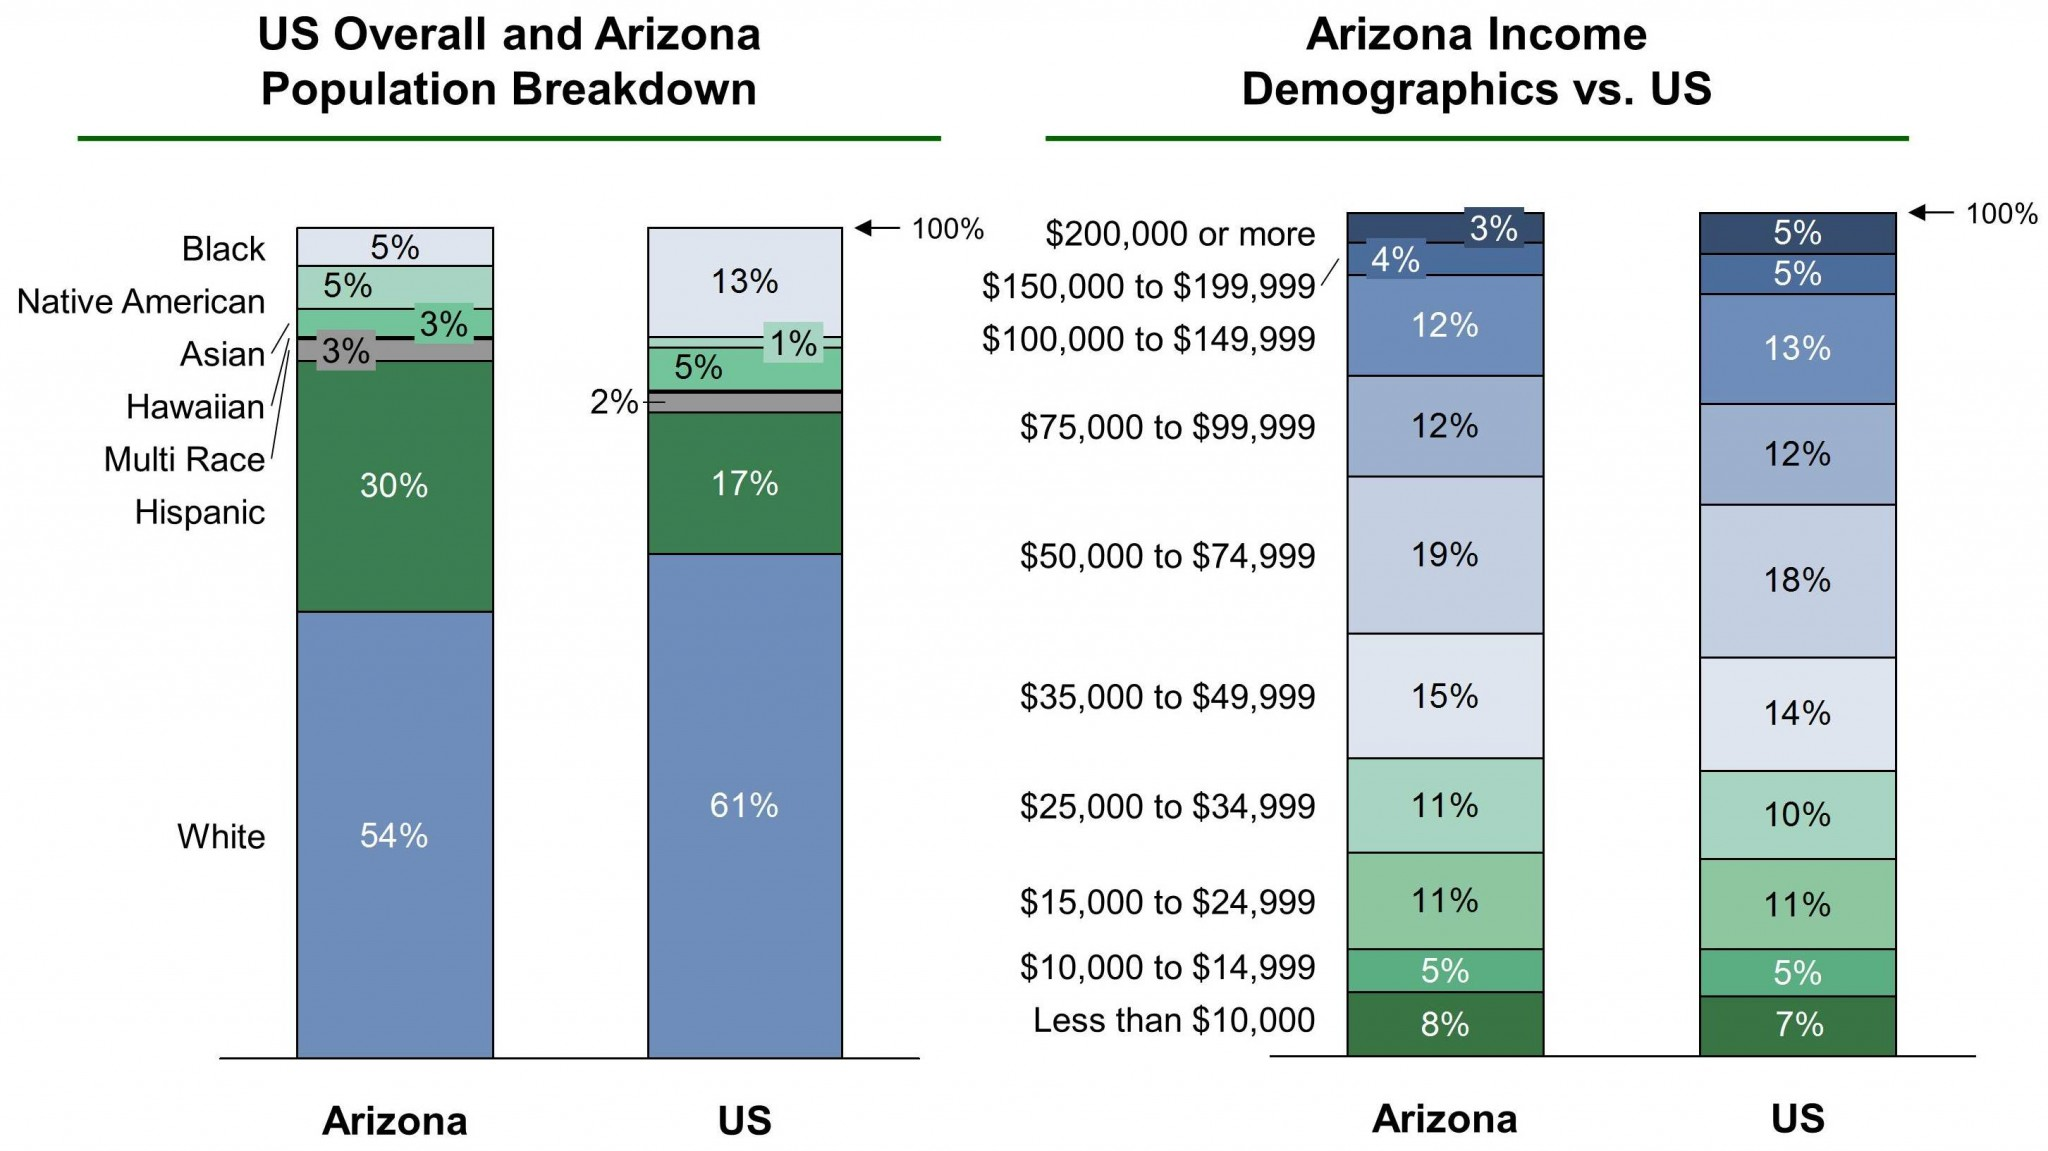 Arizona EB-5 Regional Center Demographics VF